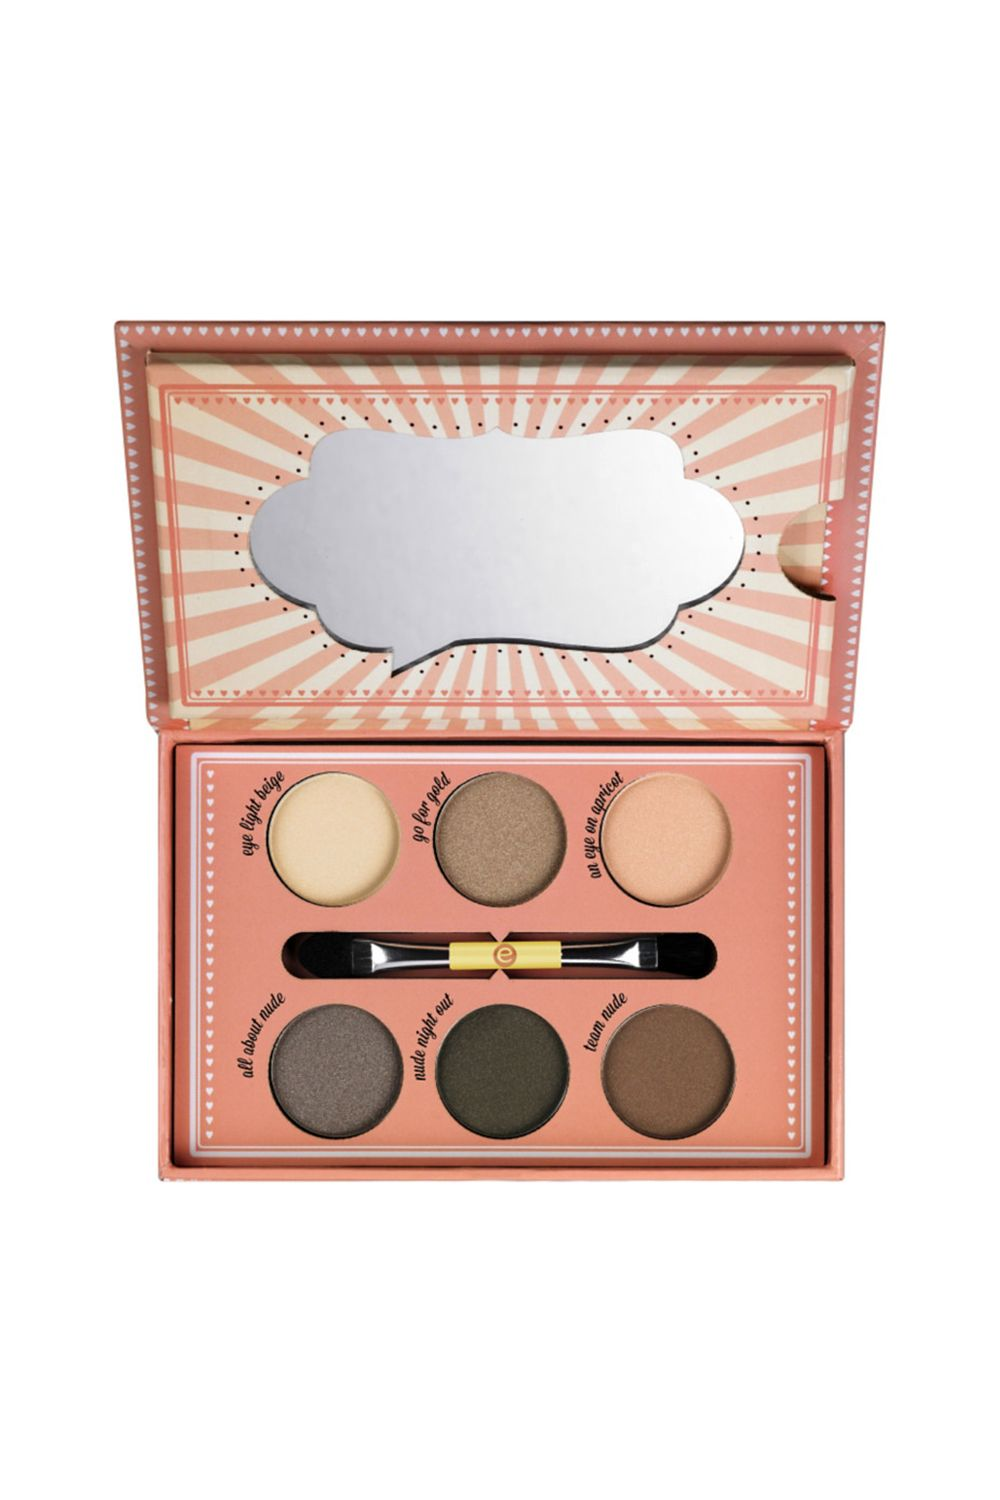 "<p>With six beige-to-espresso shades, this ""nude"" shadow kit and its dual-ended brush can define the lids on virtually any skin color.  </p><p><i data-redactor-tag=""i"">Essence How to Make Nude Eyes Palette, $9.99</i></p><p><strong data-redactor-tag=""strong"">BUY IT: <a href=""http://www.ulta.com/how-make-nude-eyes-palette?productId=xlsImpprod11001381"">ulta.com</a>. </strong></p>"